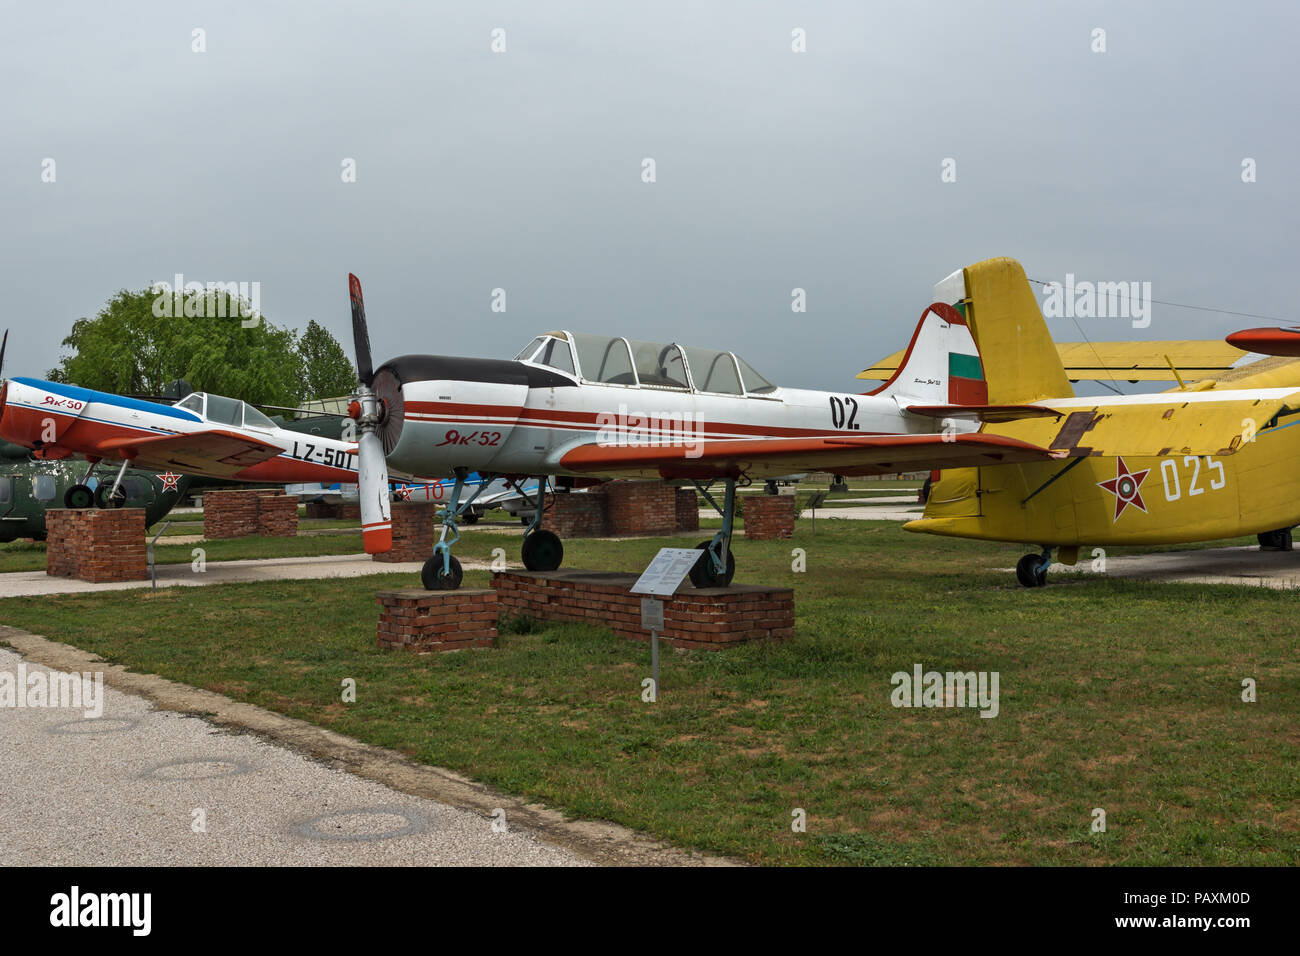 KRUMOVO, PLOVDIV, BULGARIA - 29 APRIL 2017: Plane Yakovlev Yak-52 in Aviation Museum near Plovdiv Airport, Bulgaria - Stock Image